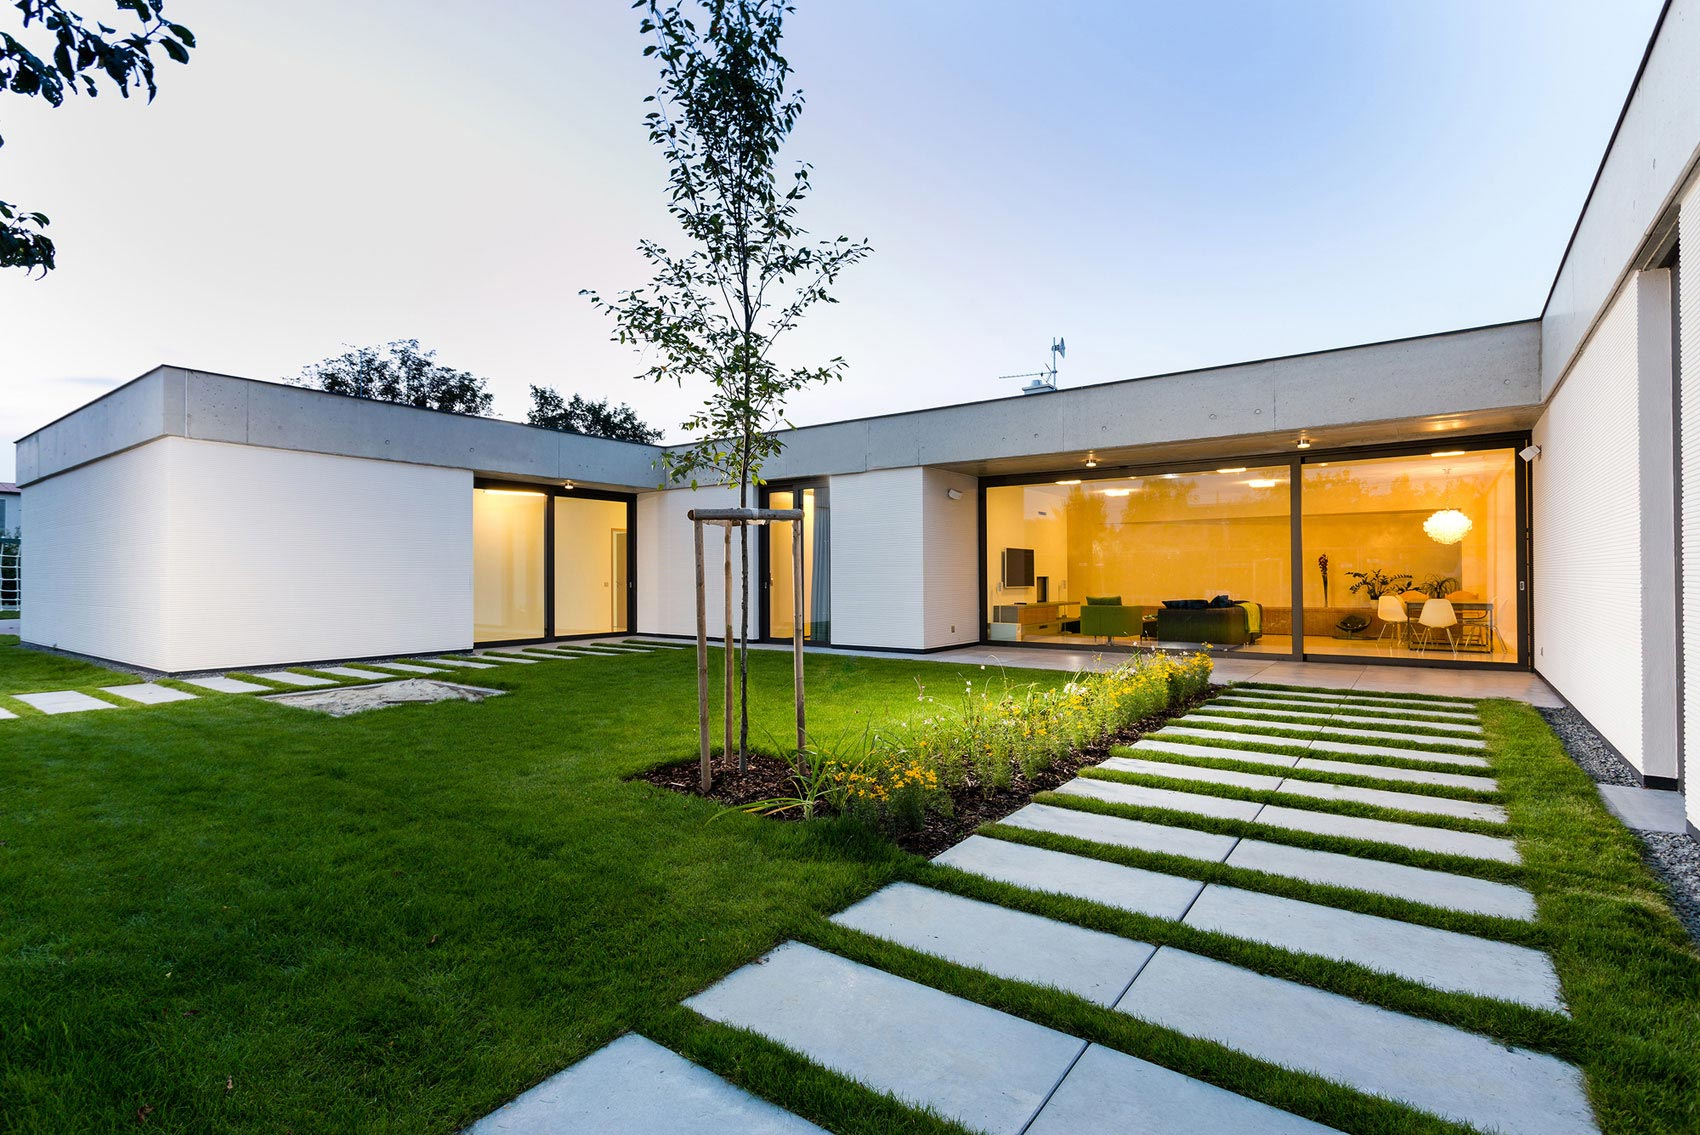 One story modern home in olomouc slavon n by jvarchitekt for Casa moderna rd